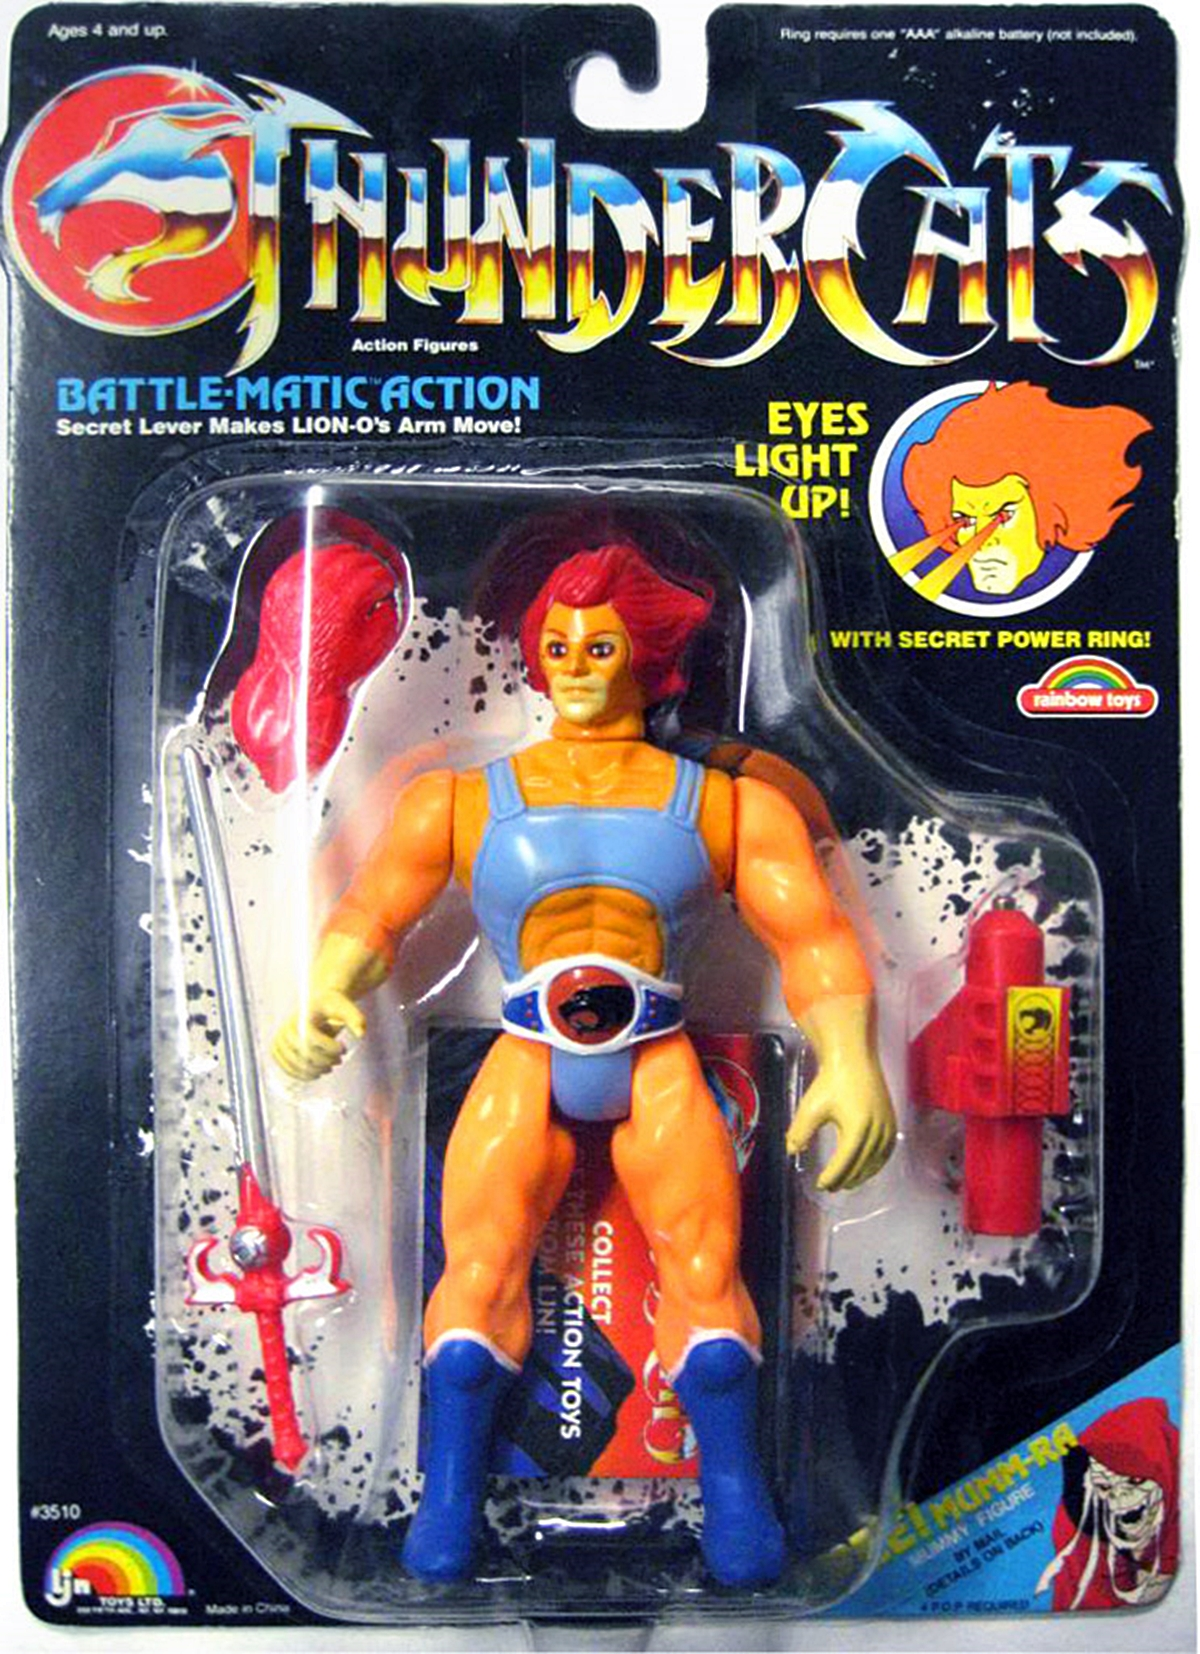 9 3 12 Toys All 80s Boys Wanted To Own